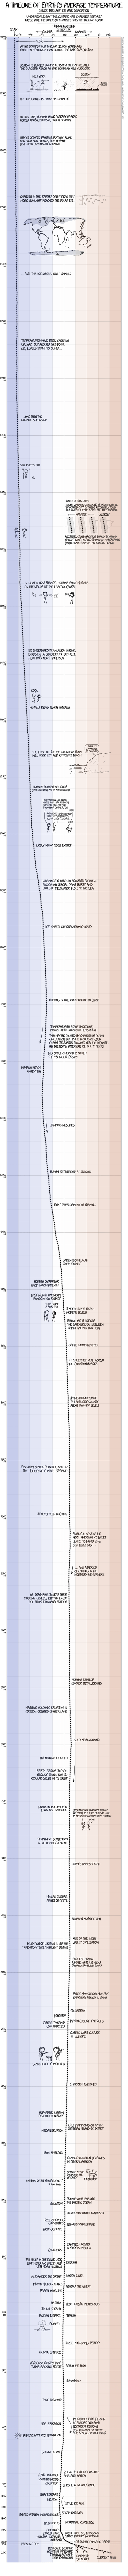 small resolution of source xkcd